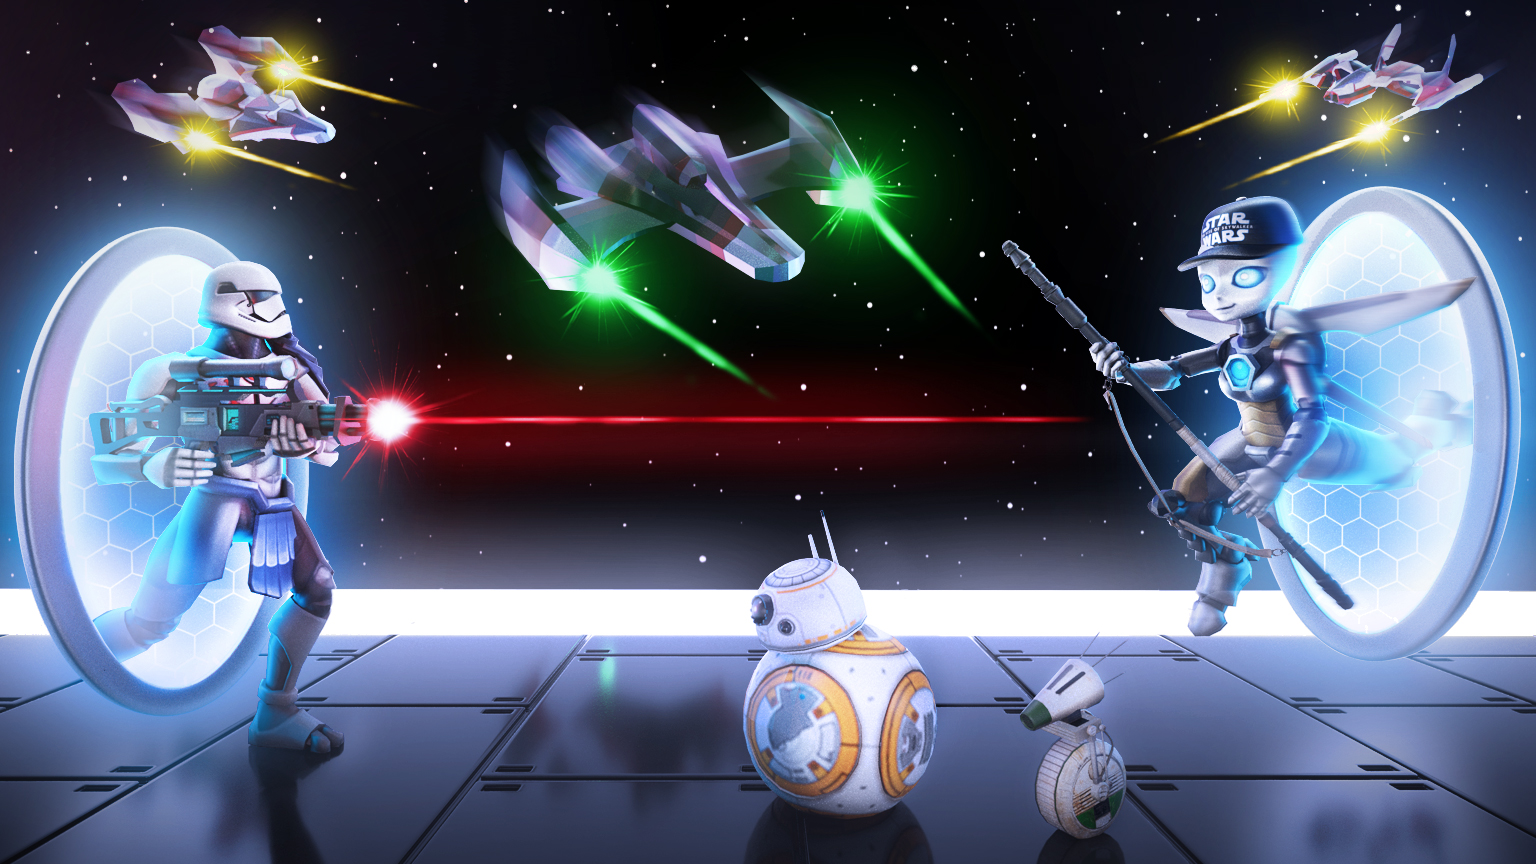 Star Wars And Roblox Join Forces For The Galactic Speedway Creator